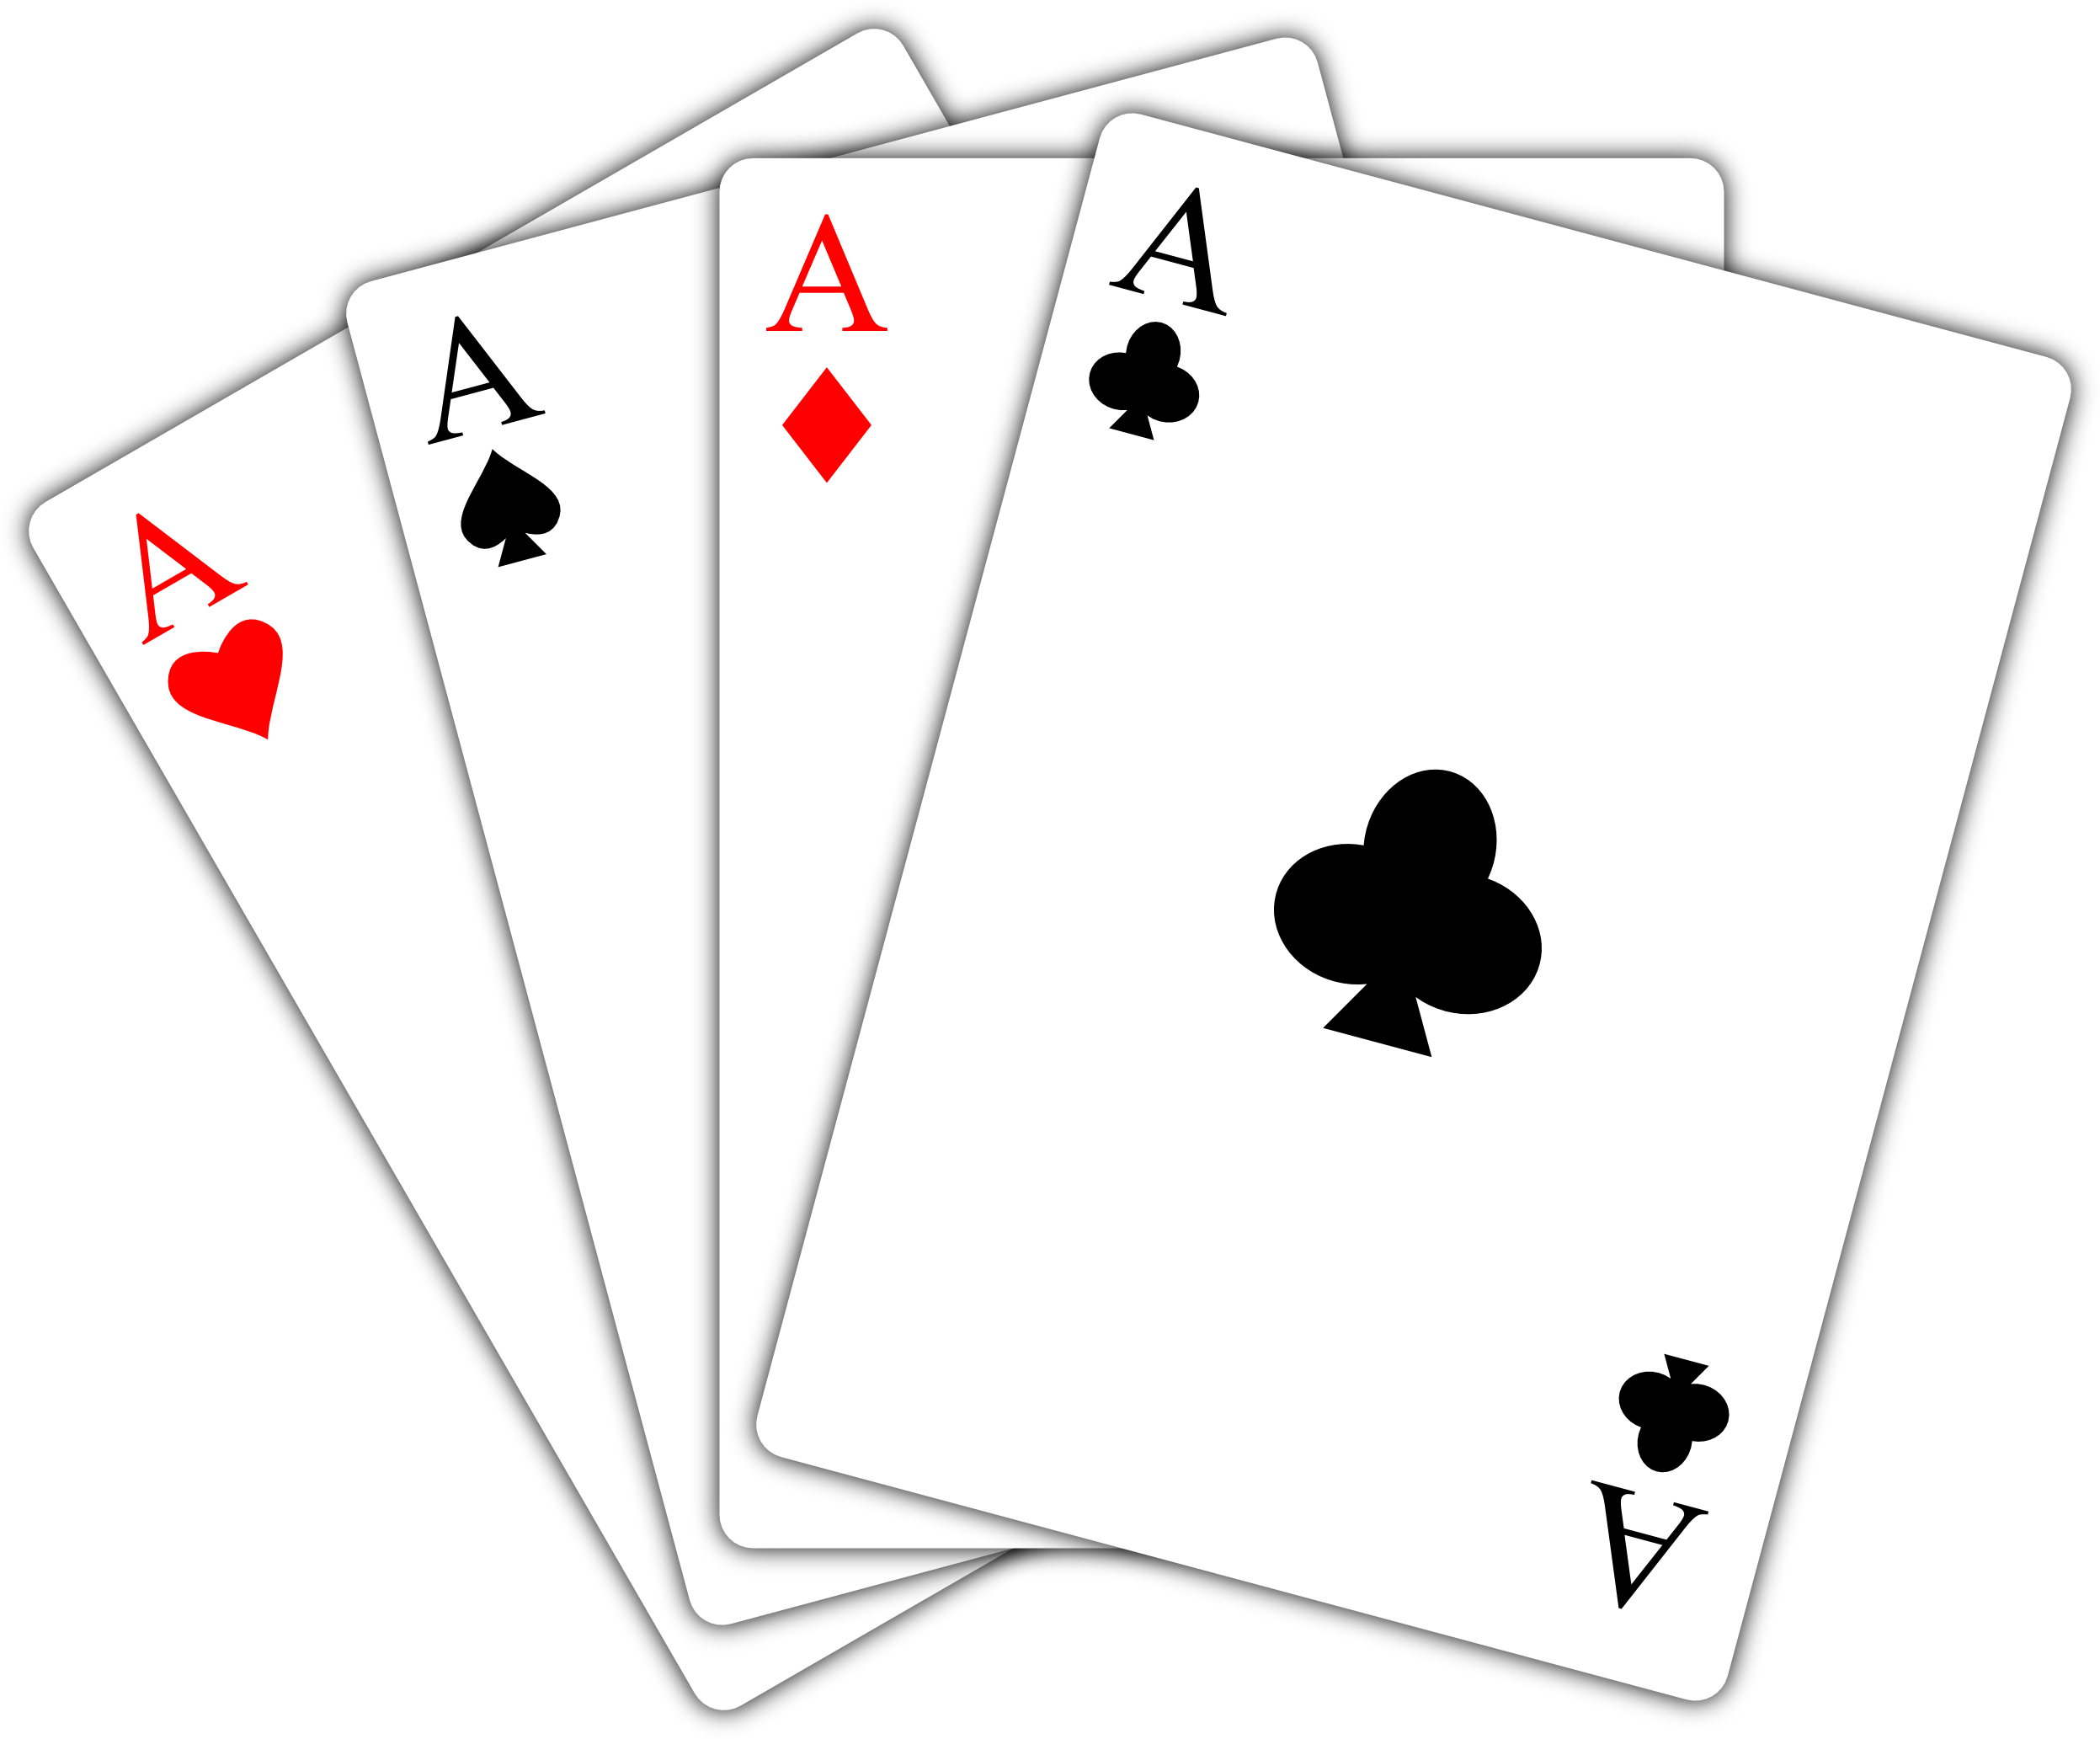 Playing hd transparent images. Cards .png png graphic black and white library